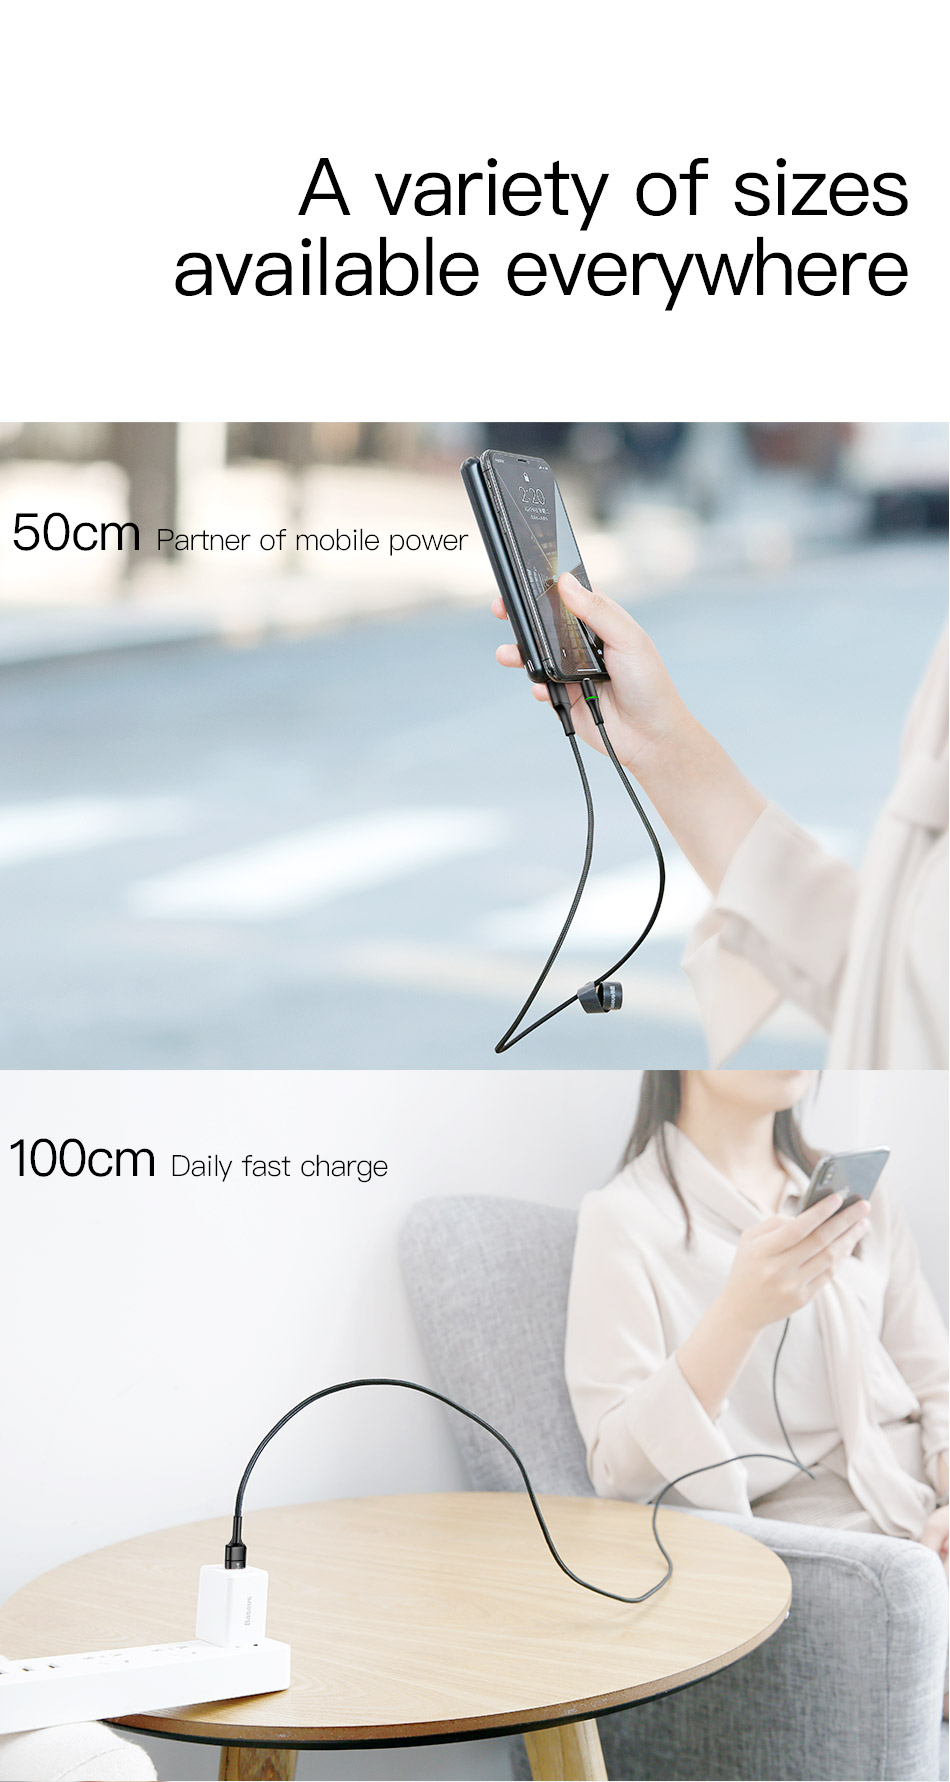 Baseus USB Cable For iPhone Charger Fast Data Charging Mobile Phone Cable For iPhone Xs Max Xr X 11 8 7 6 6S 5 5S iPad Wire Cord 3m 13